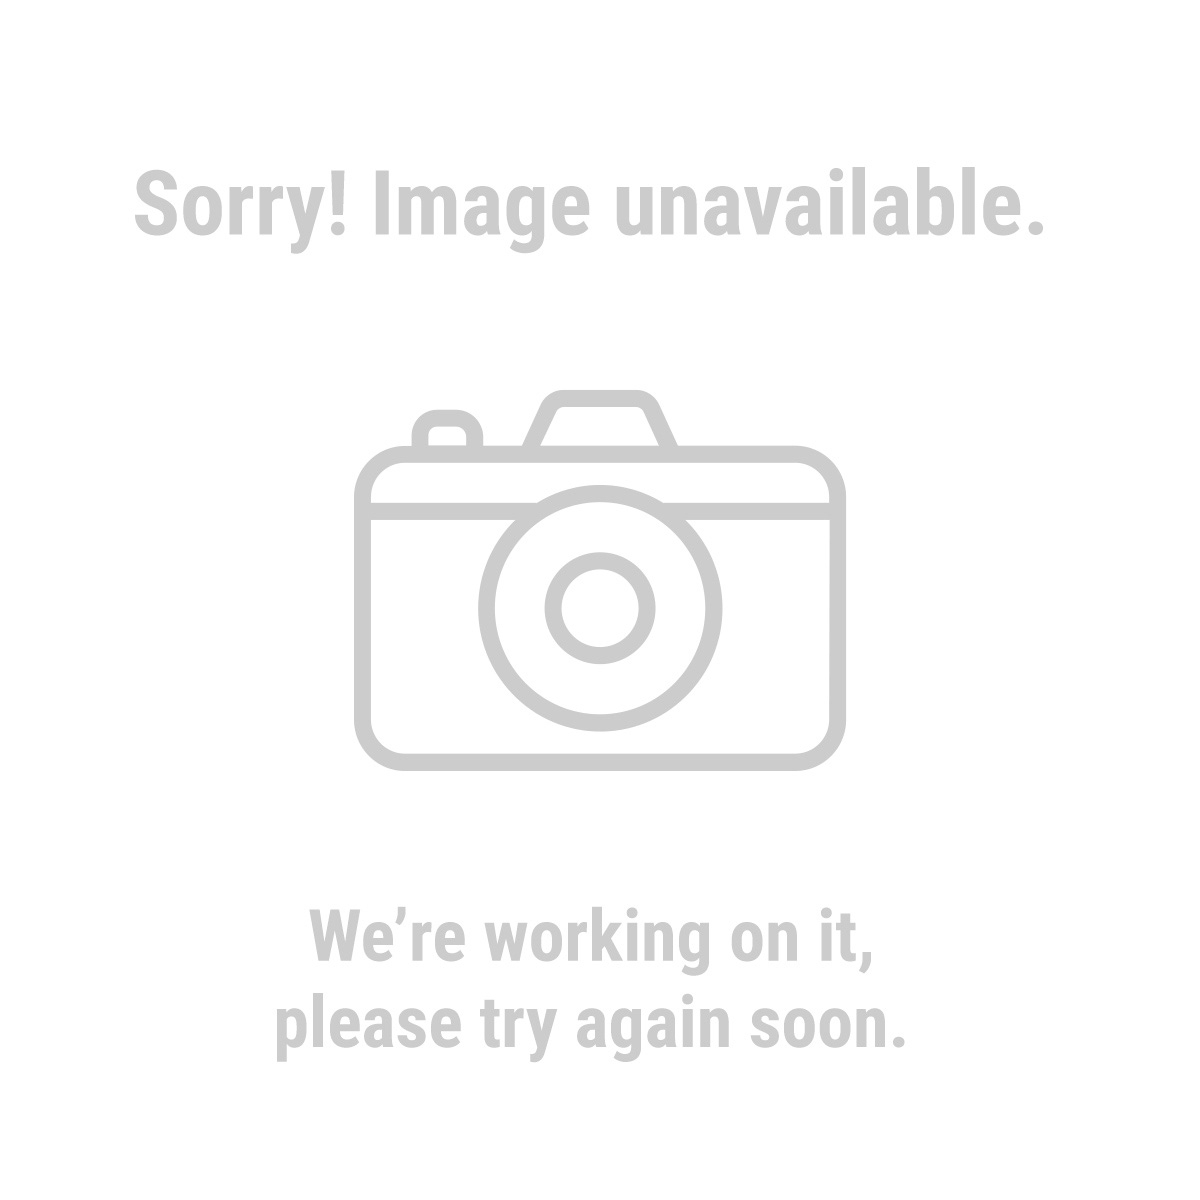 "Harbor Freight Tools 69254 11 ft. 4"" x 17 ft. 6"" All Purpose Weather Resistant Tarp"